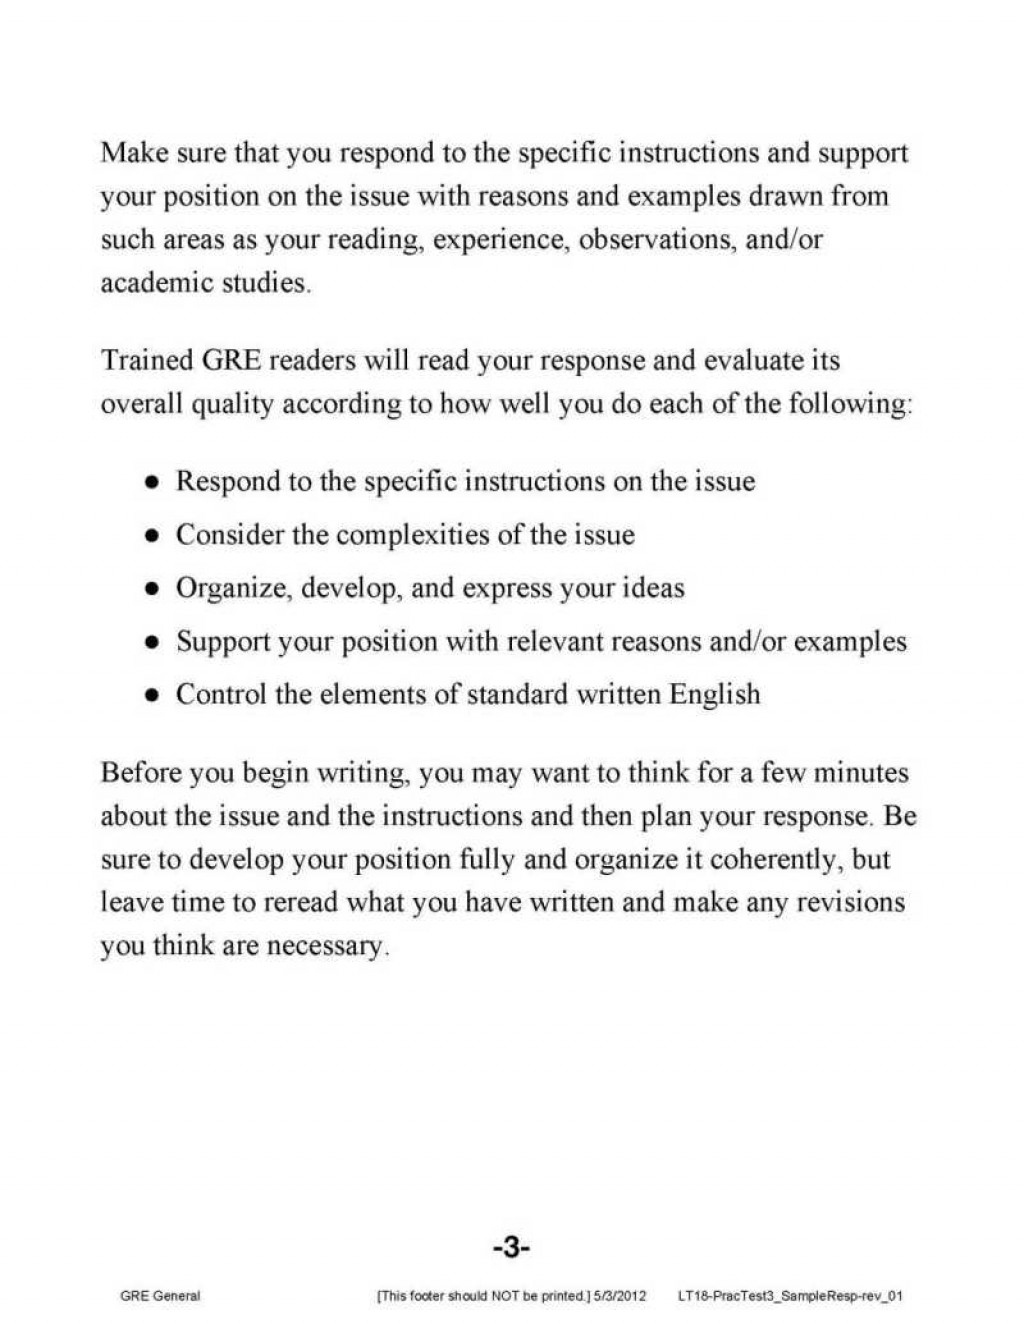 014 Essay Example Sample Gre Essays Issue Responses Poemsrom Co Writing Examples Analytical Ess Tips Format Topics Pdf Strategies Preparation Books Unique Practice Argument Prompts Large